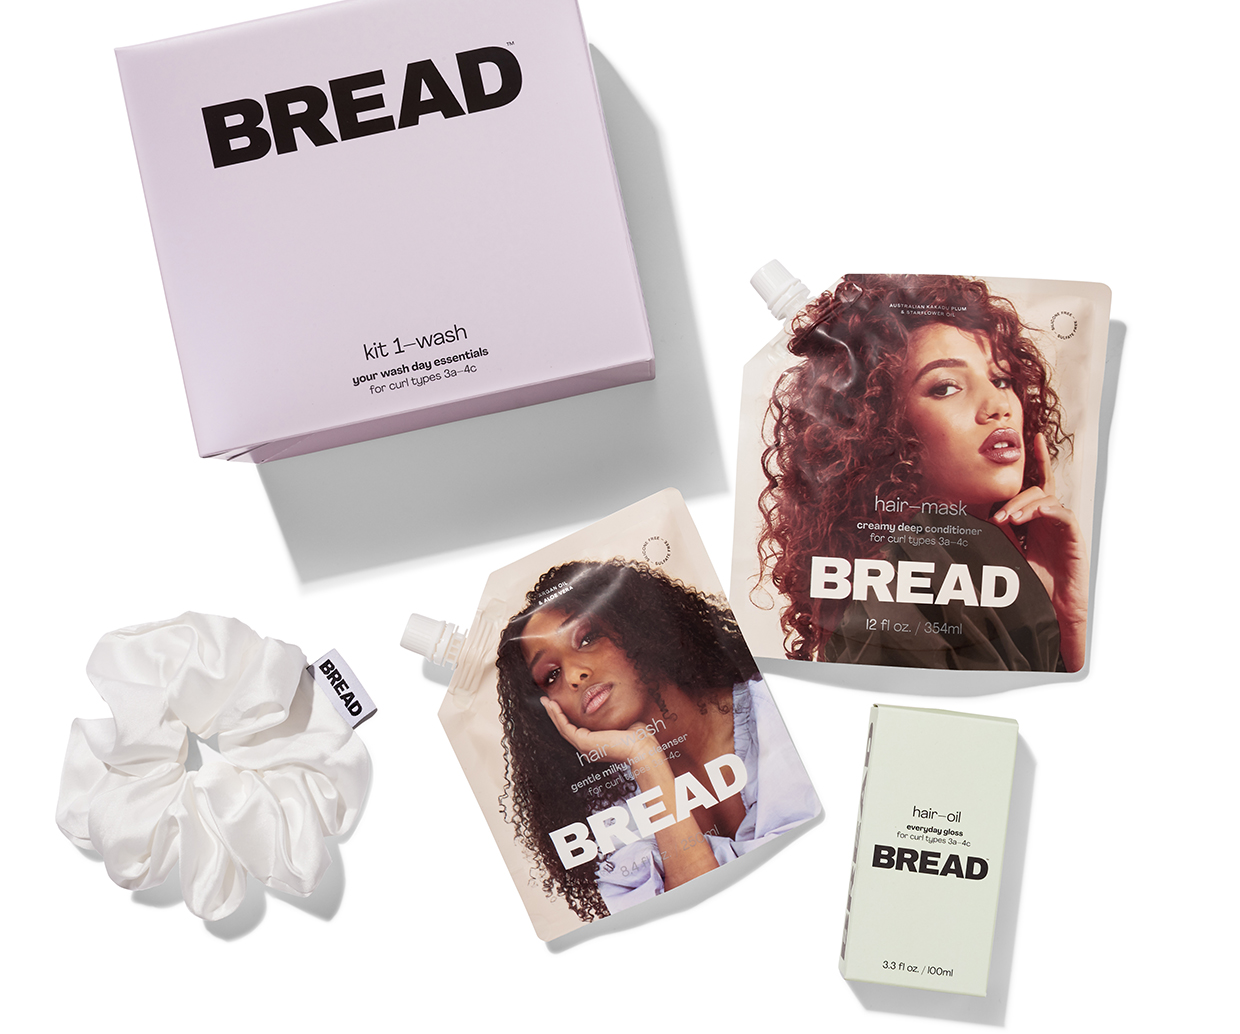 products of bread beauty supply